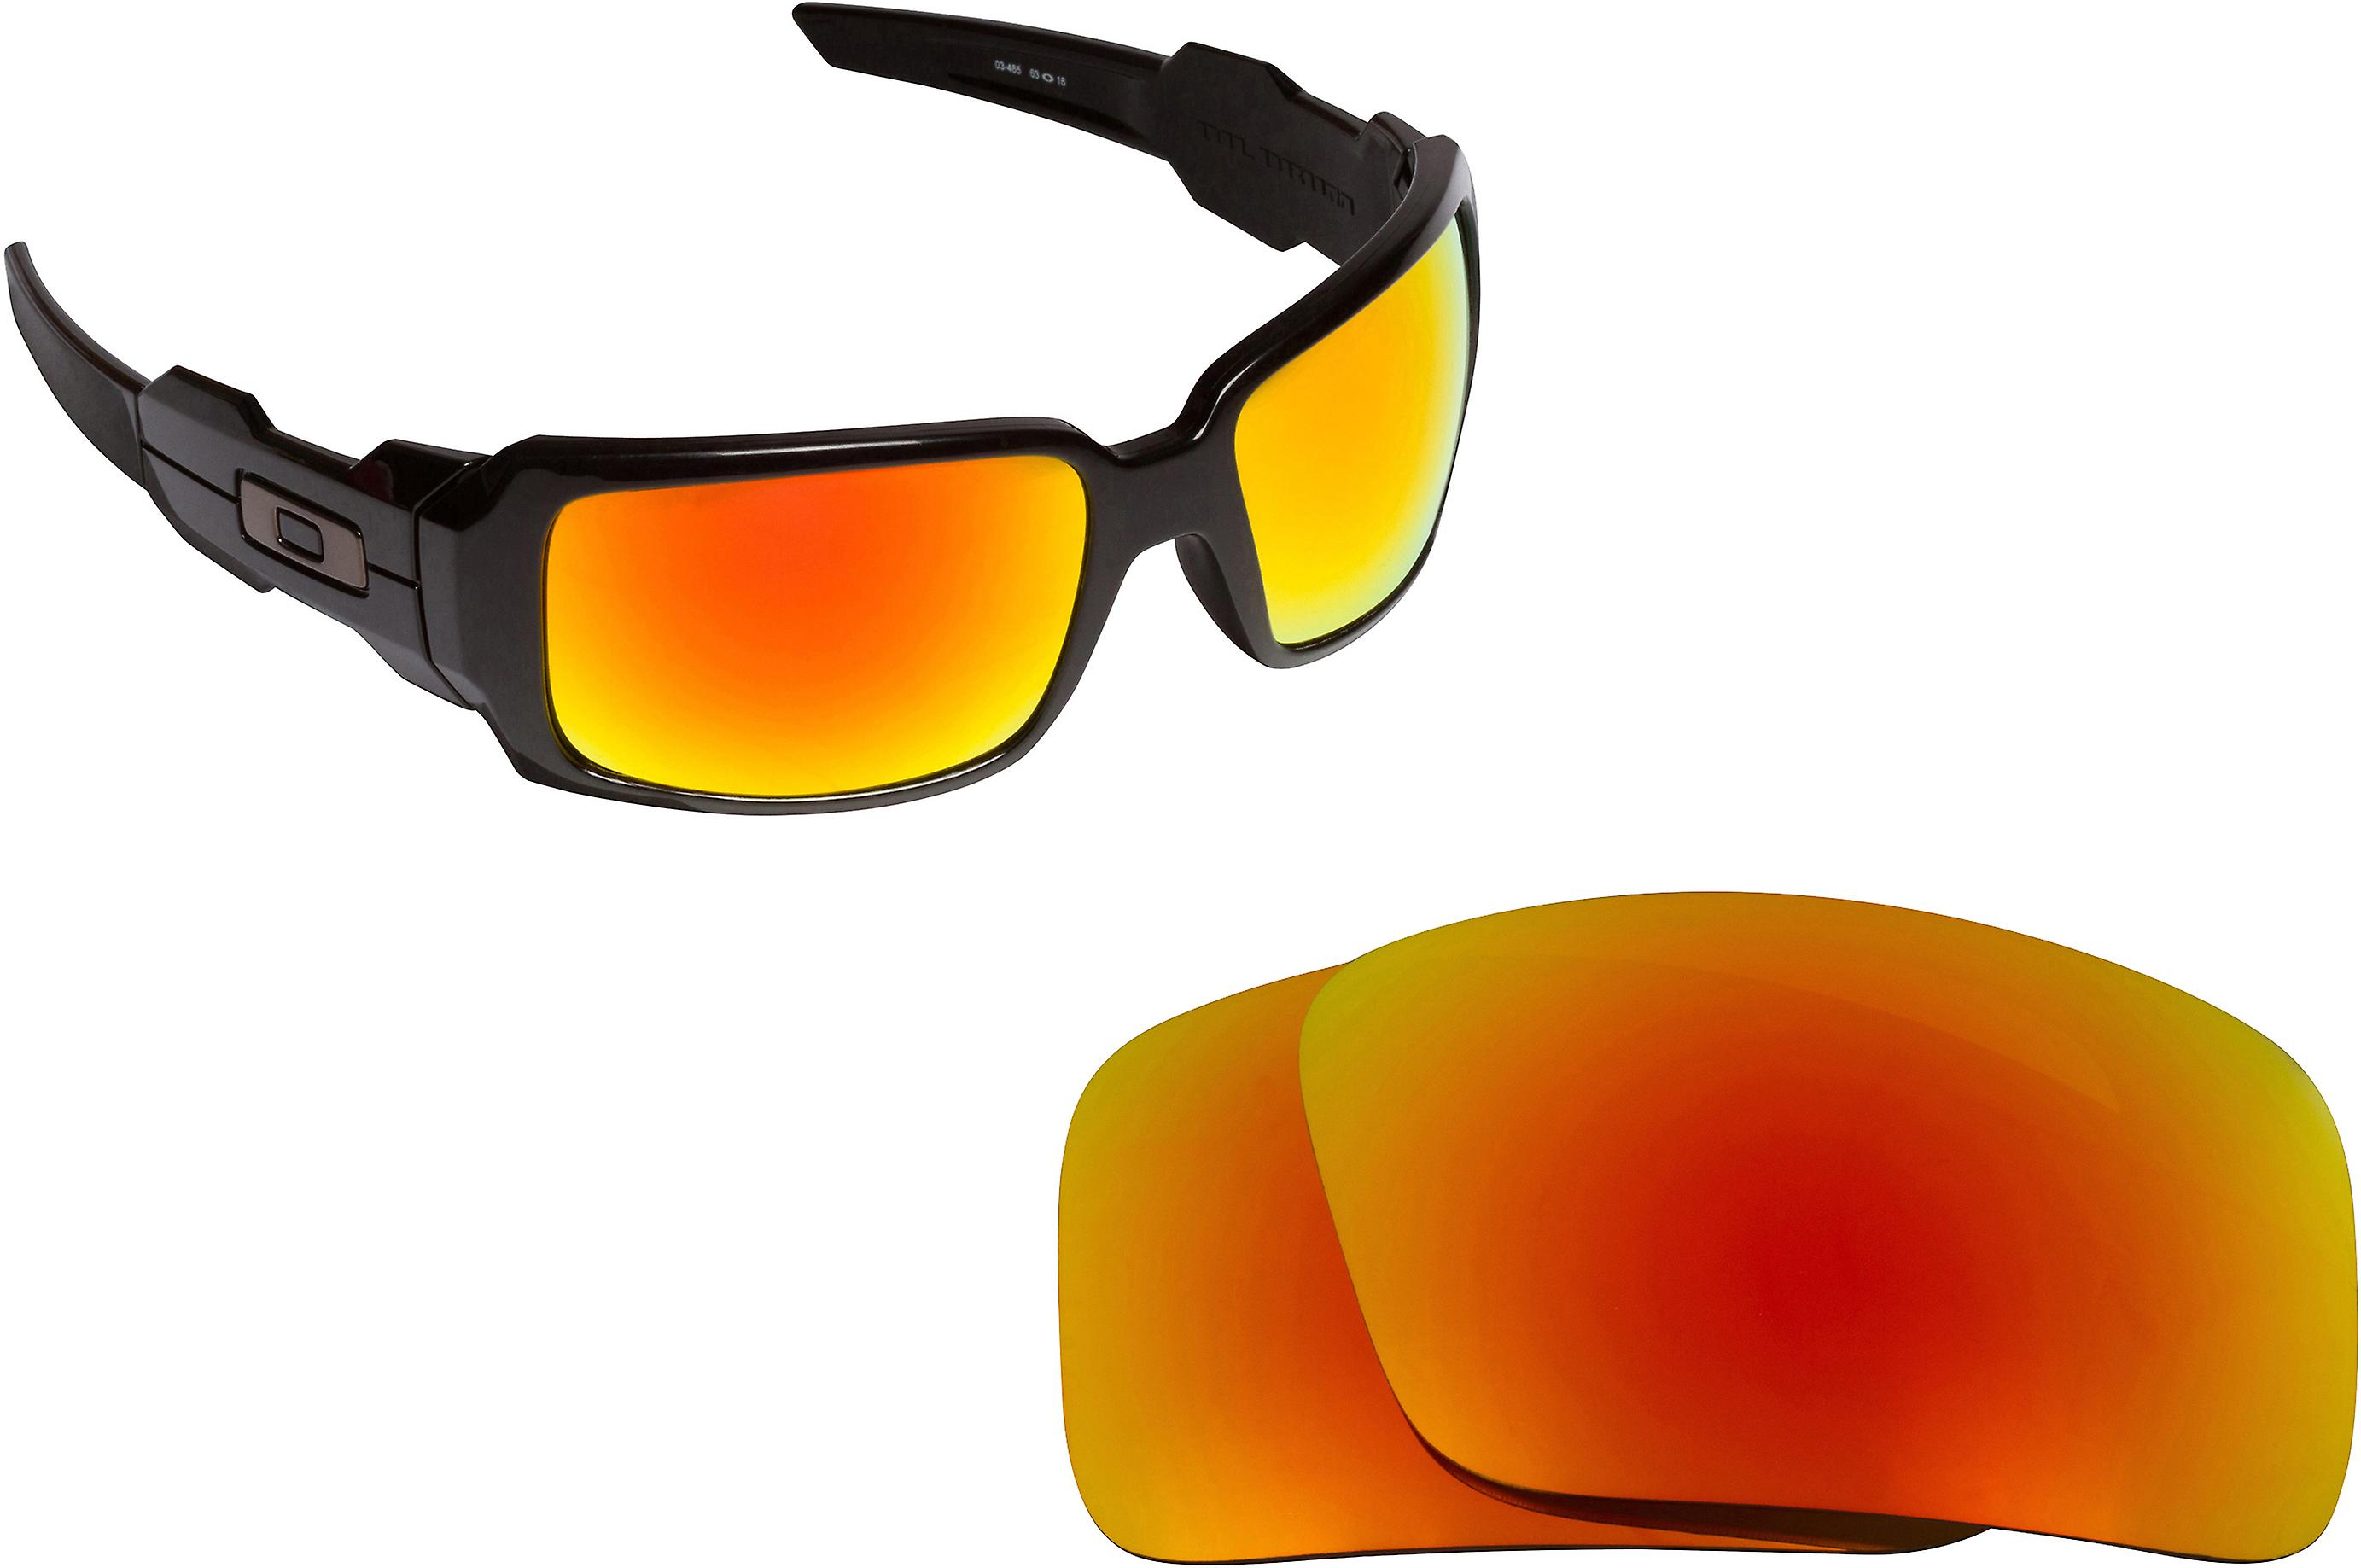 2c787798e58 Oil Drum Replacement Lenses Polarized Red Mirror by SEEK fits OAKLEY  Sunglasses